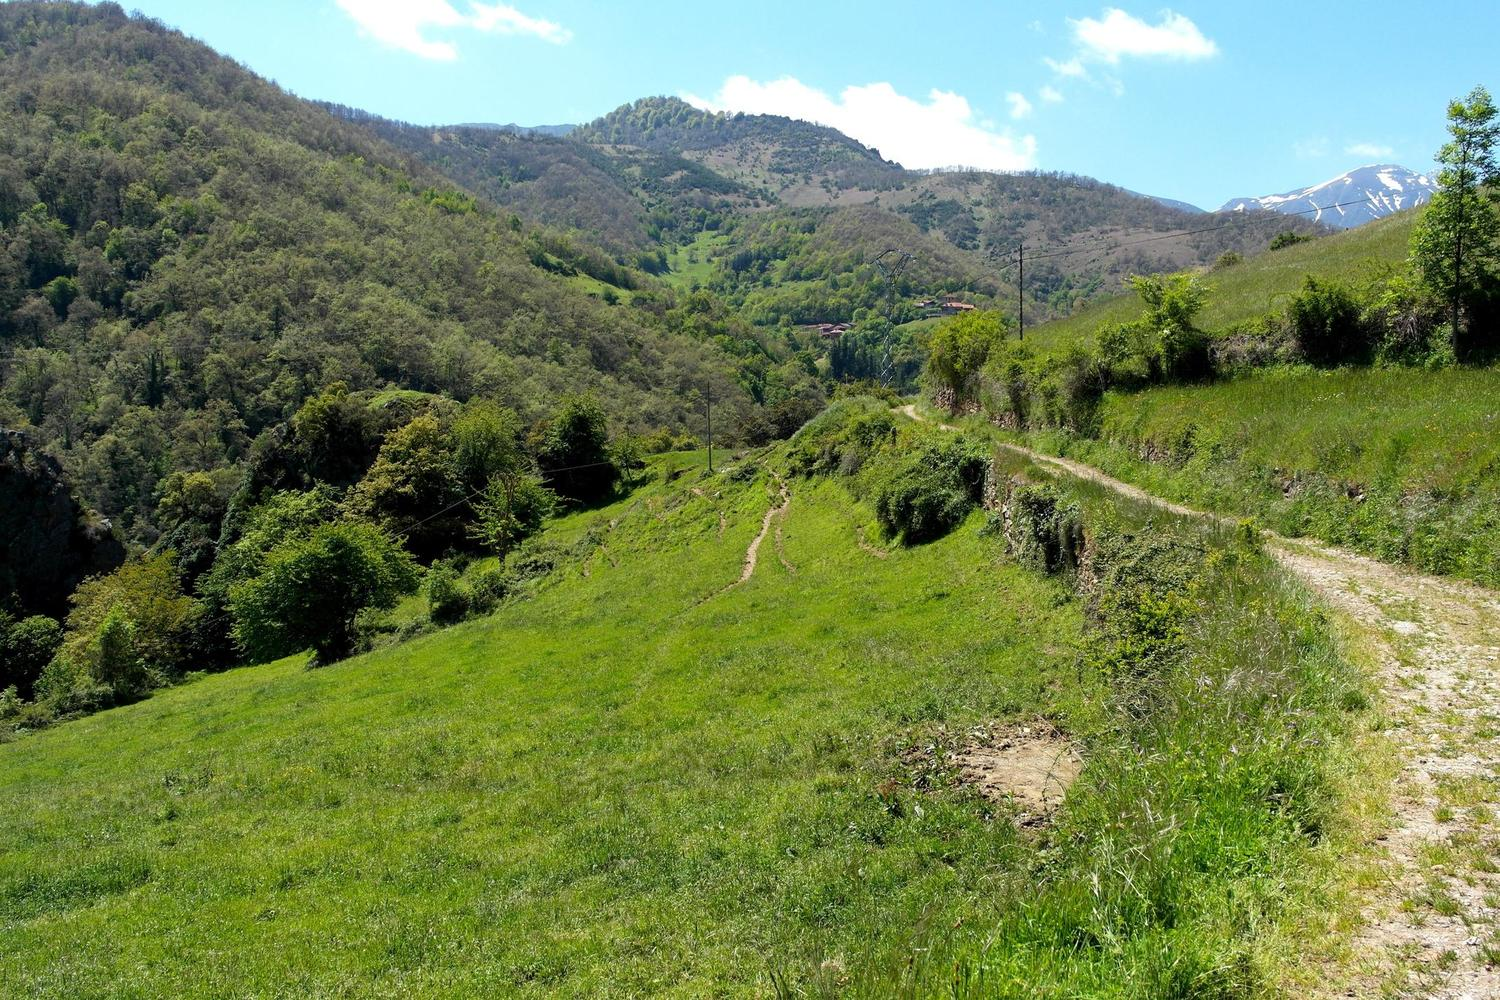 Picos inn to inn route is exclusive to Pura Aventura and therefore peaceful